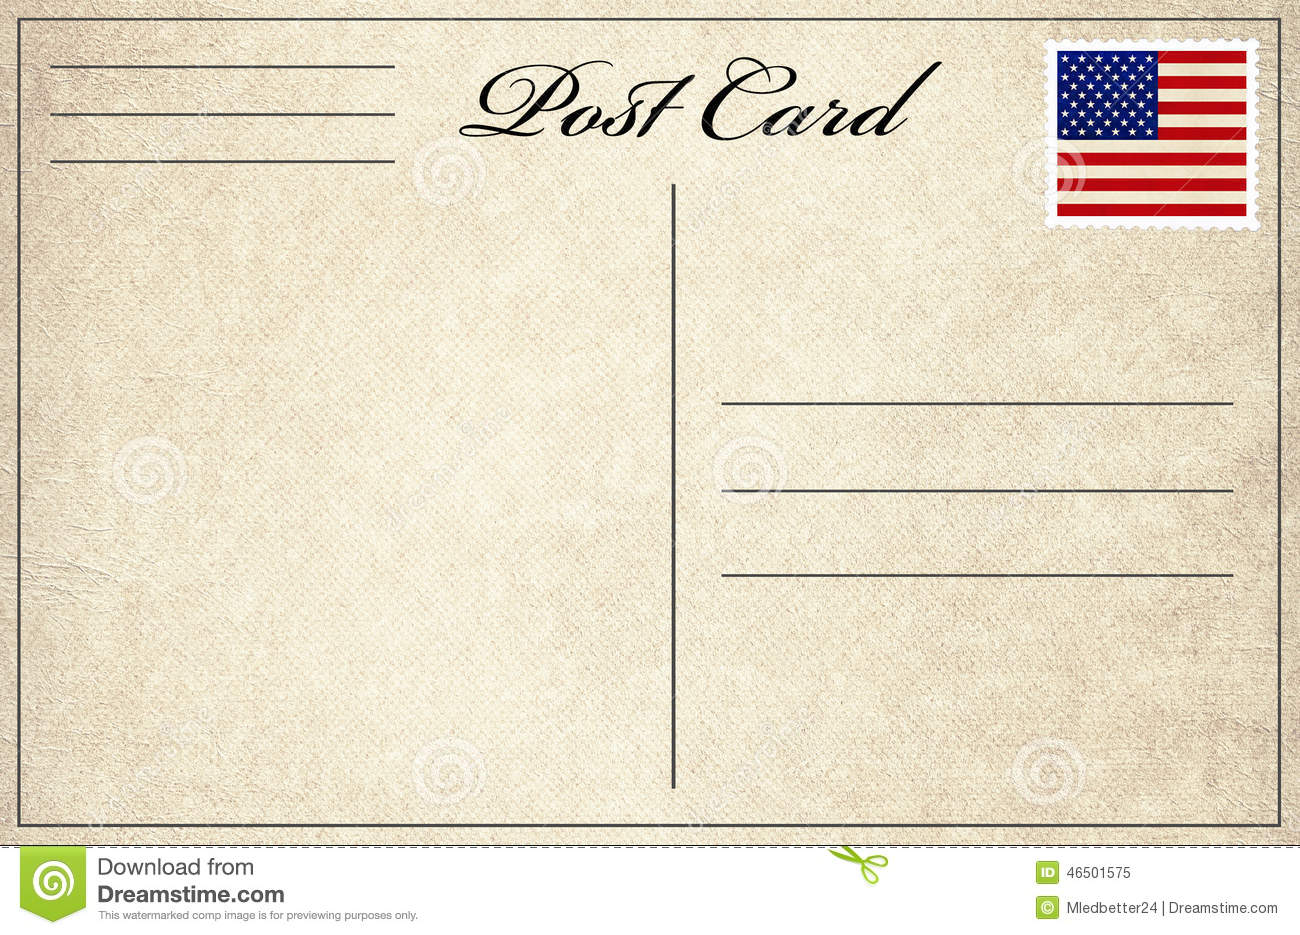 Post Card With Flag Stamp Stock Photo - Image: 46501575